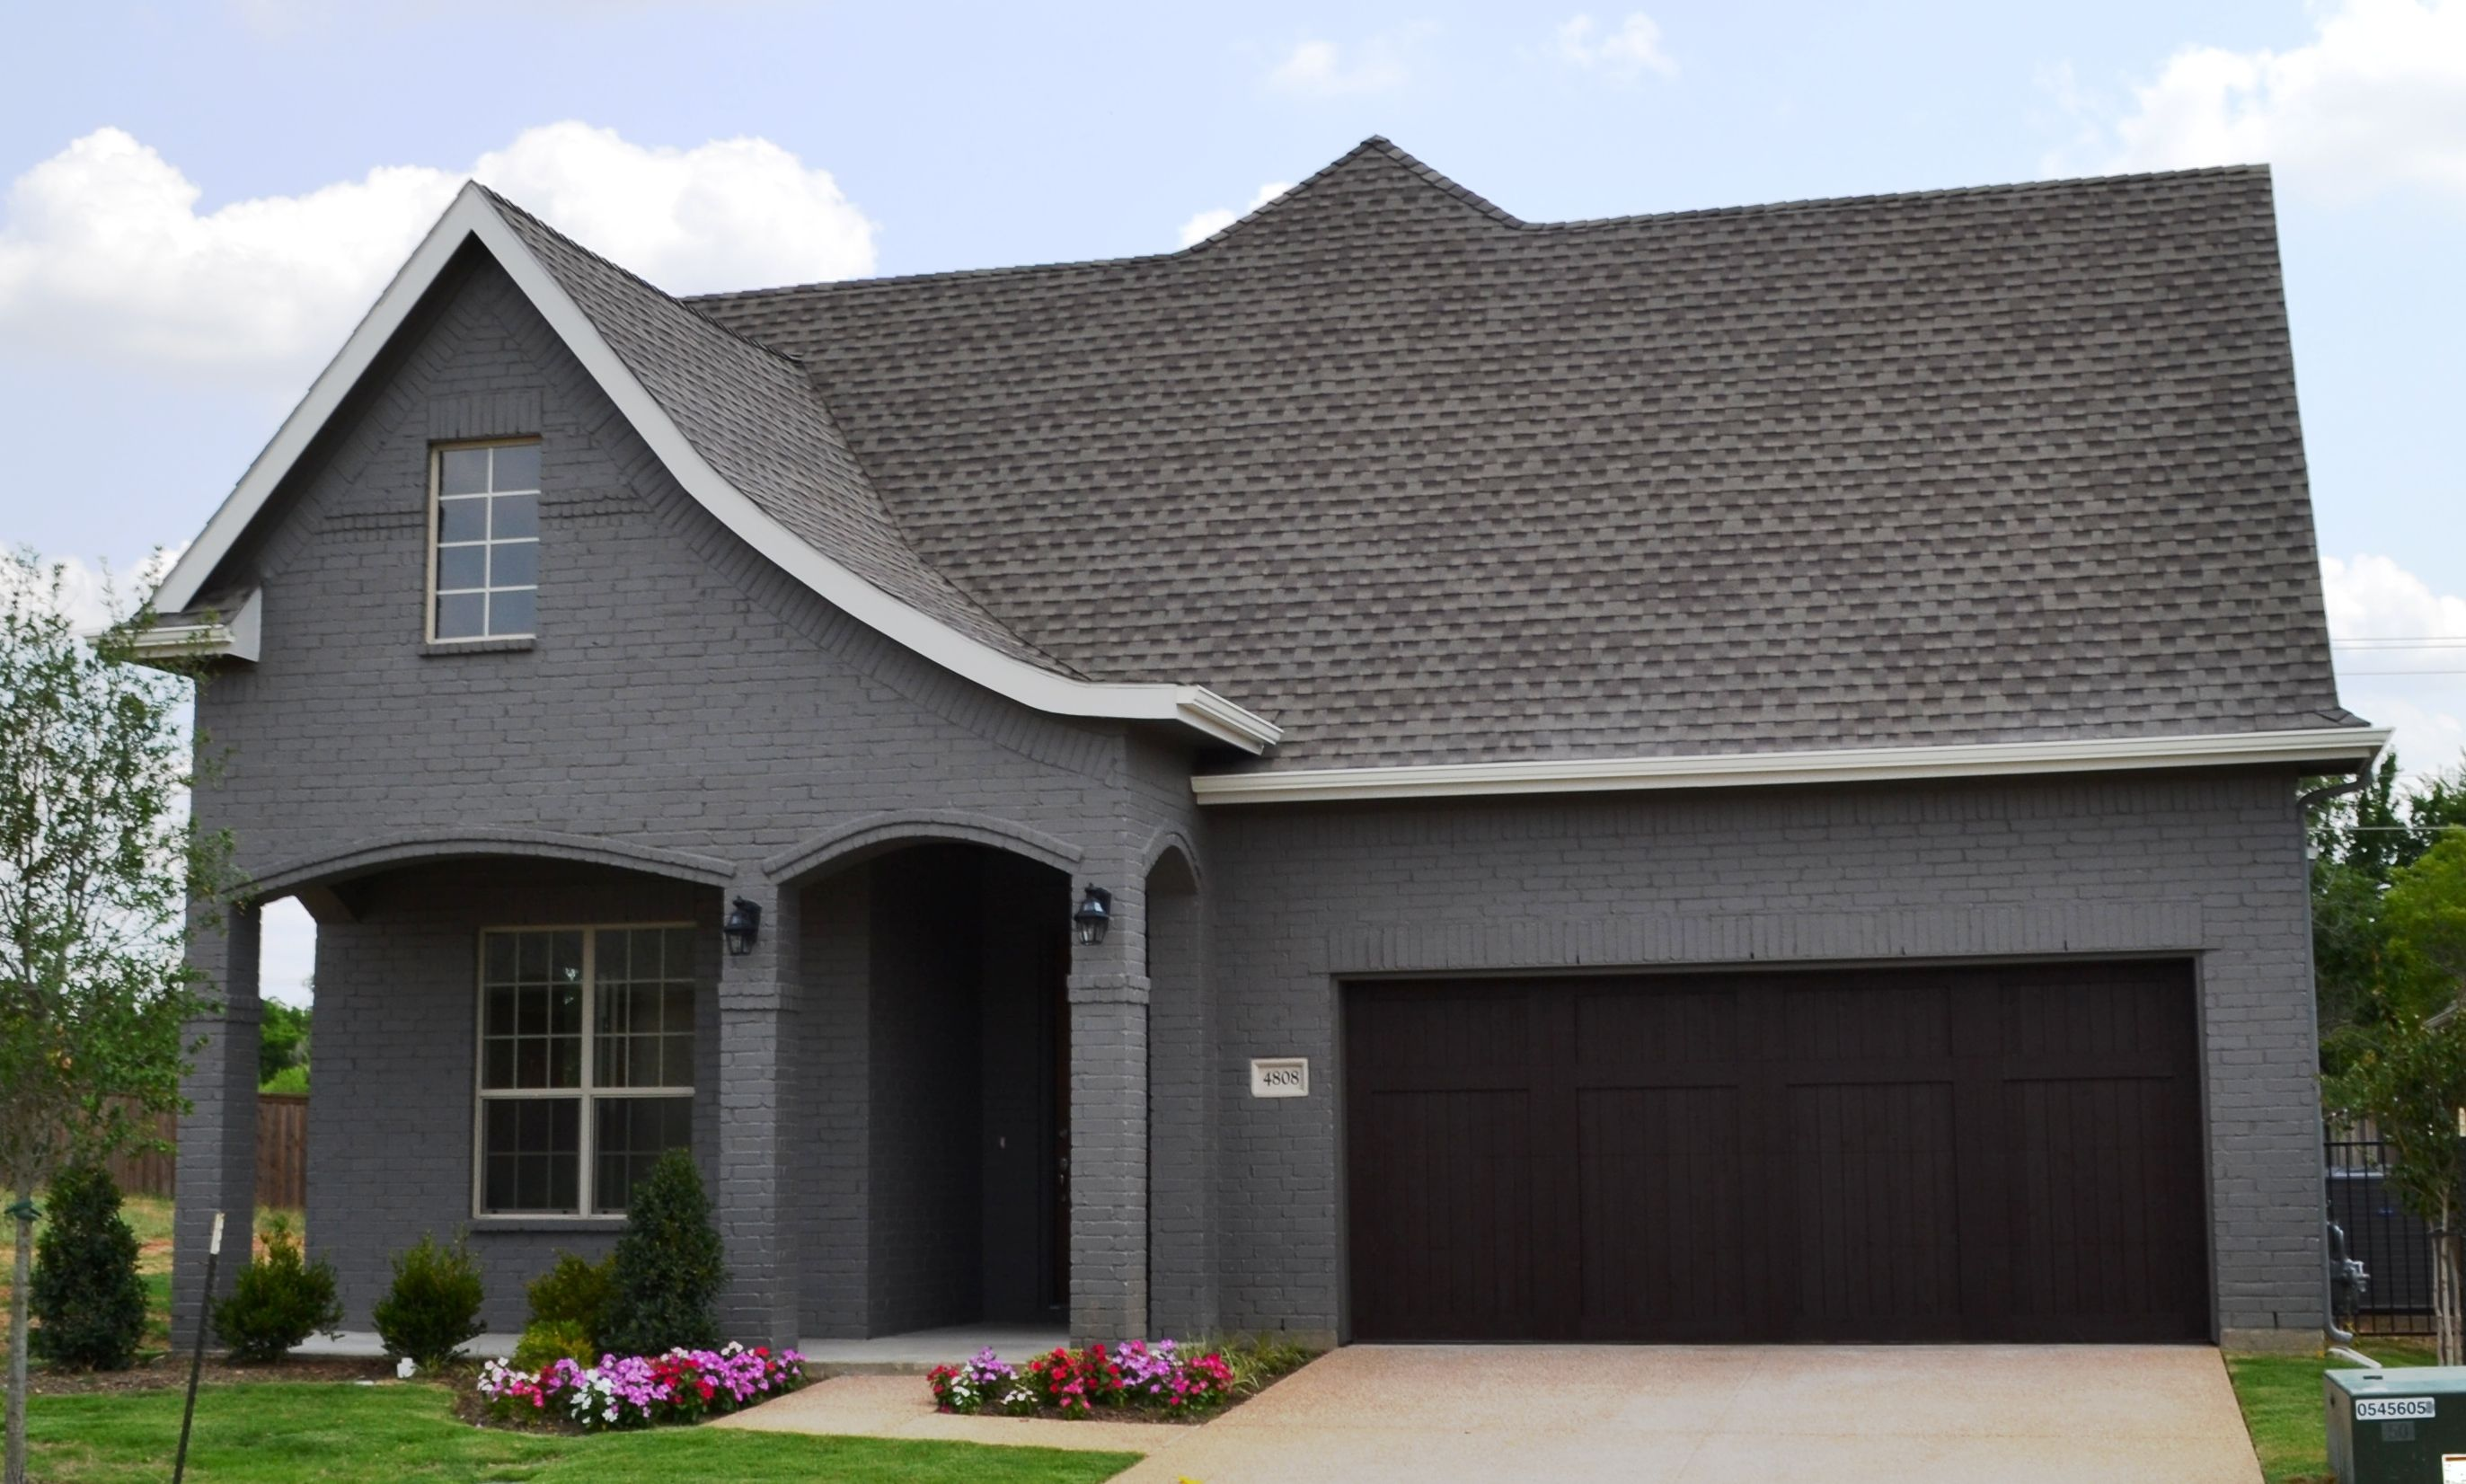 Village Homes Dark Grey Painted Brick With Light Trim